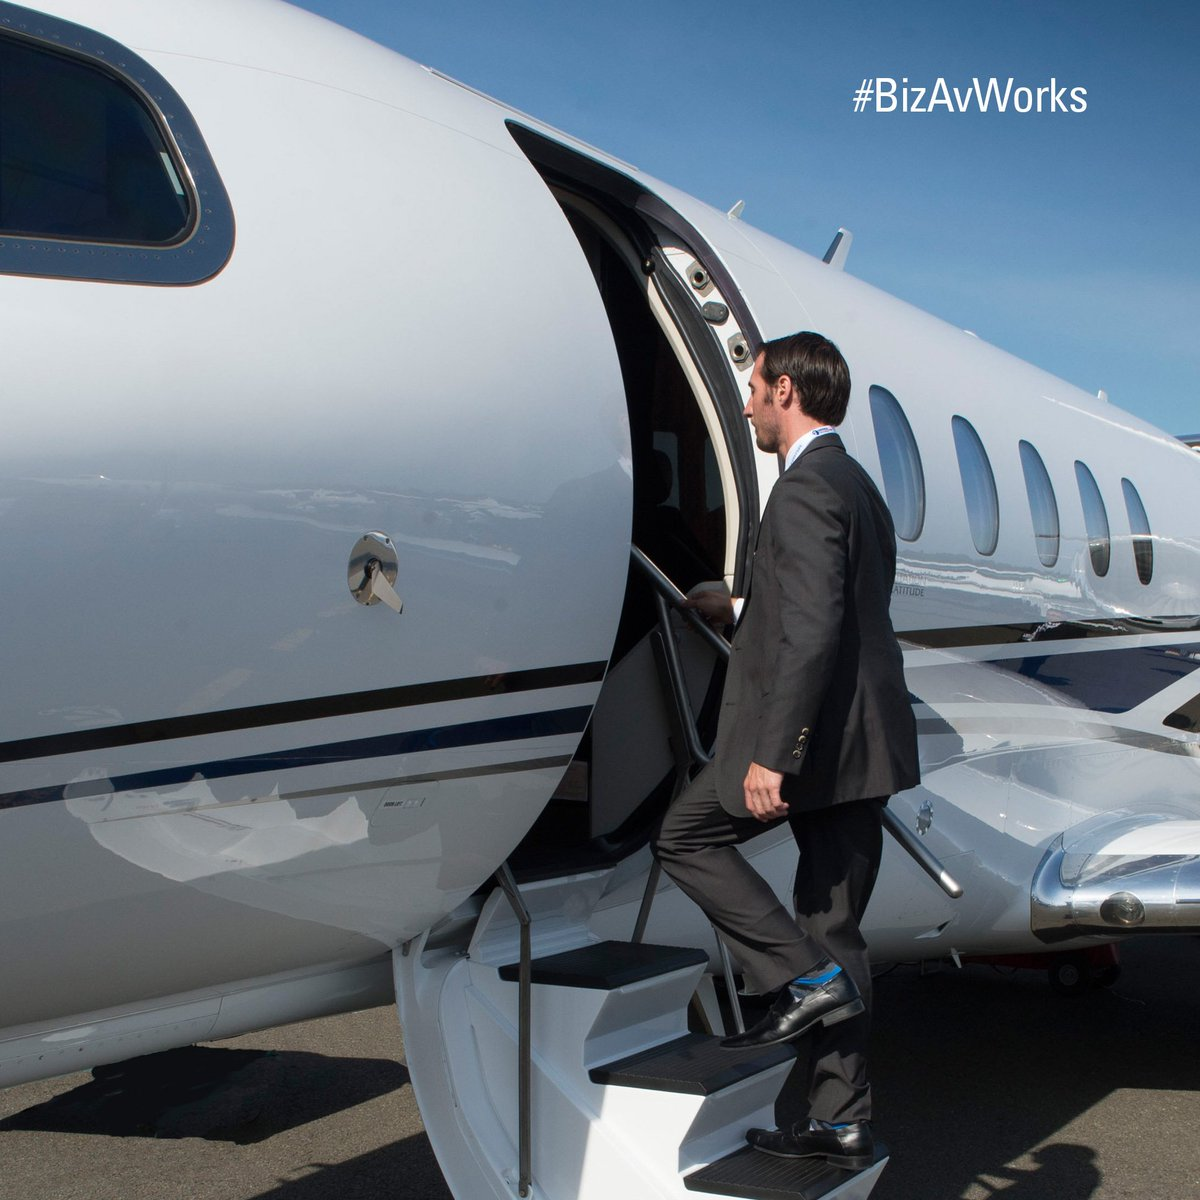 Organizations use business aircraft to minimize travel time; enhance the efficiency, productivity, safety and security of key personnel; and remain nimble, competitive and successful in today's highly competitive marketplace. #BizAvWorks